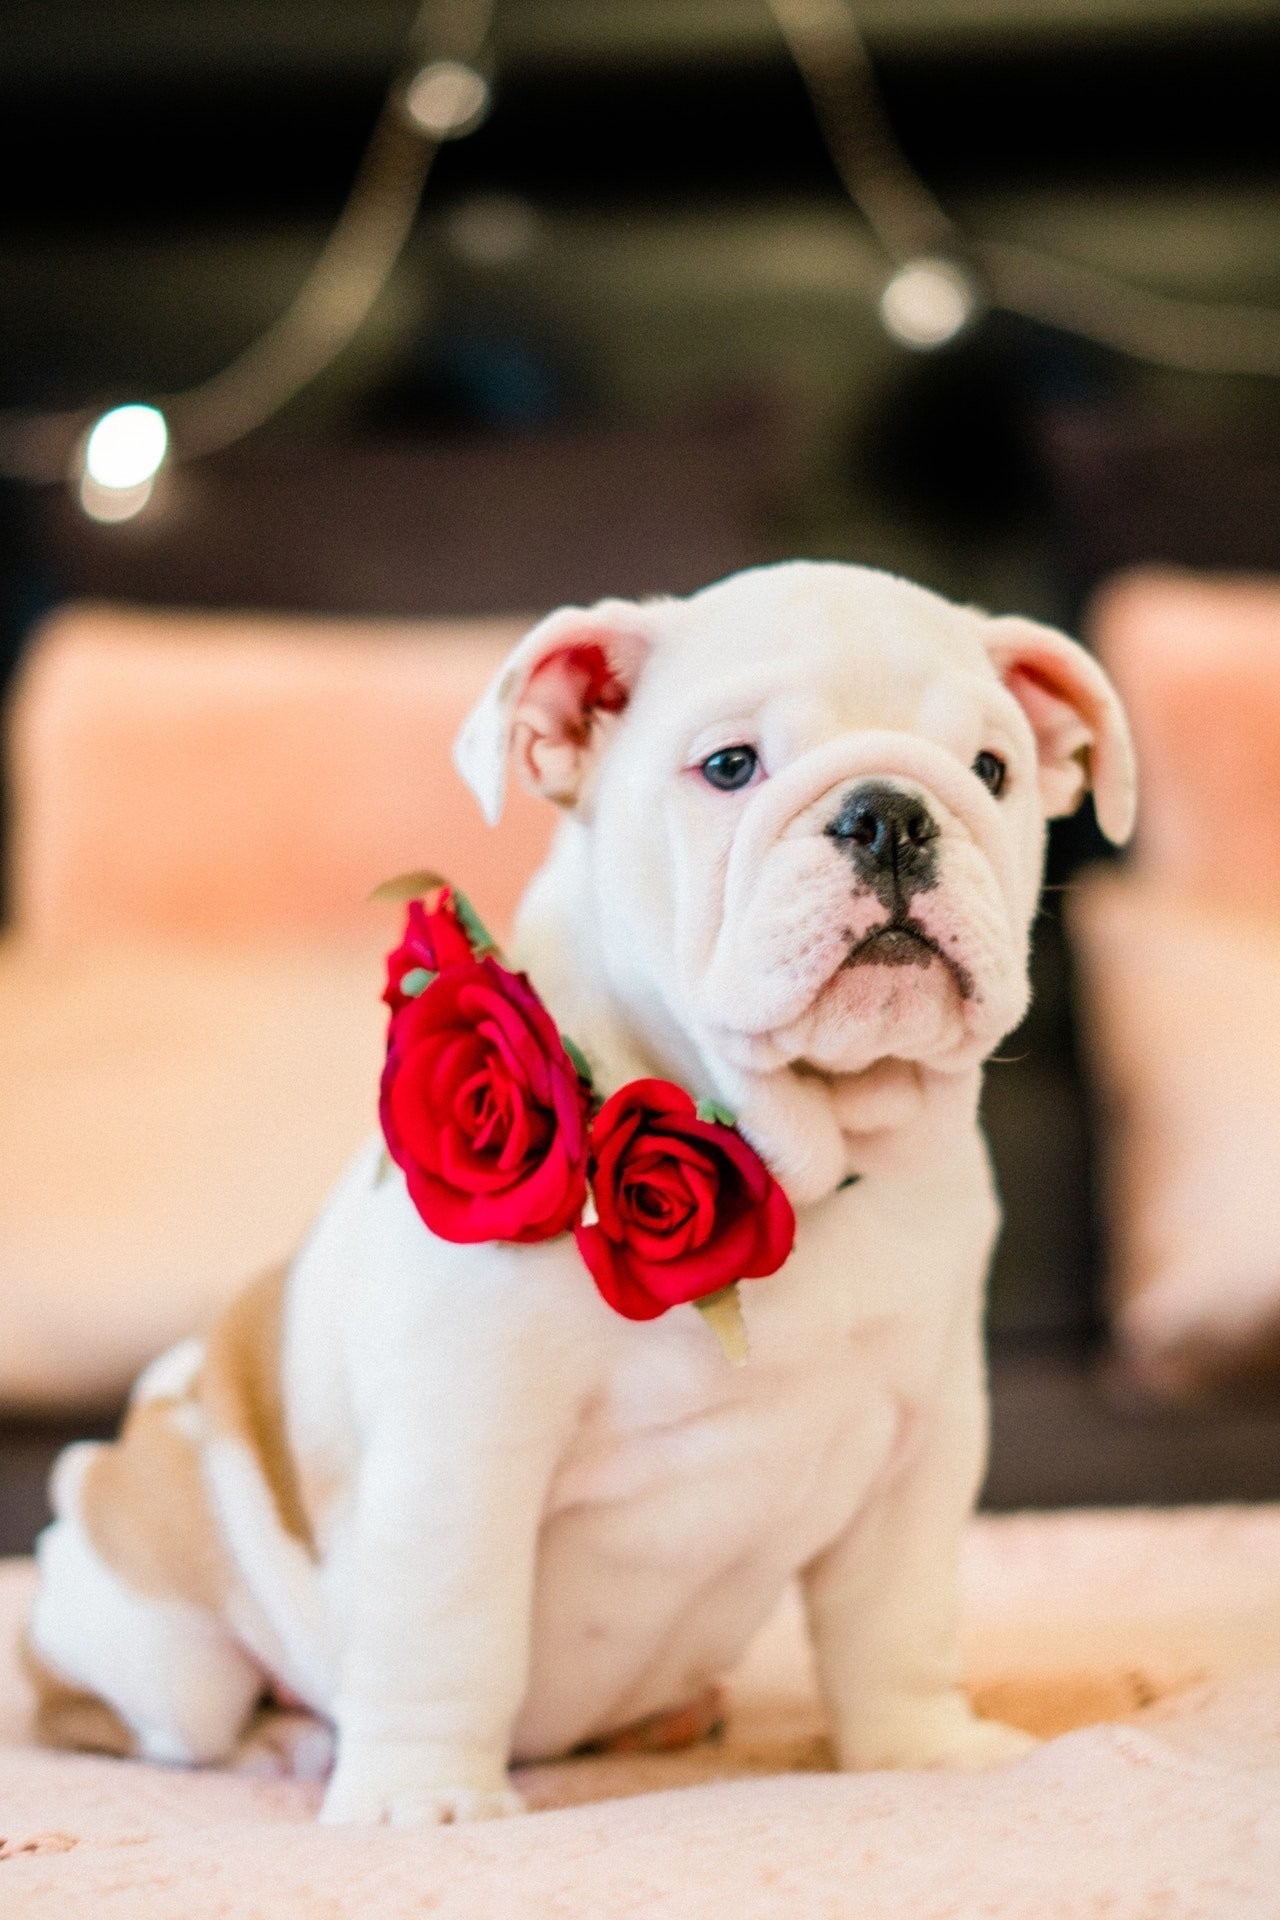 Dog sitting with rose flowers on his collar.